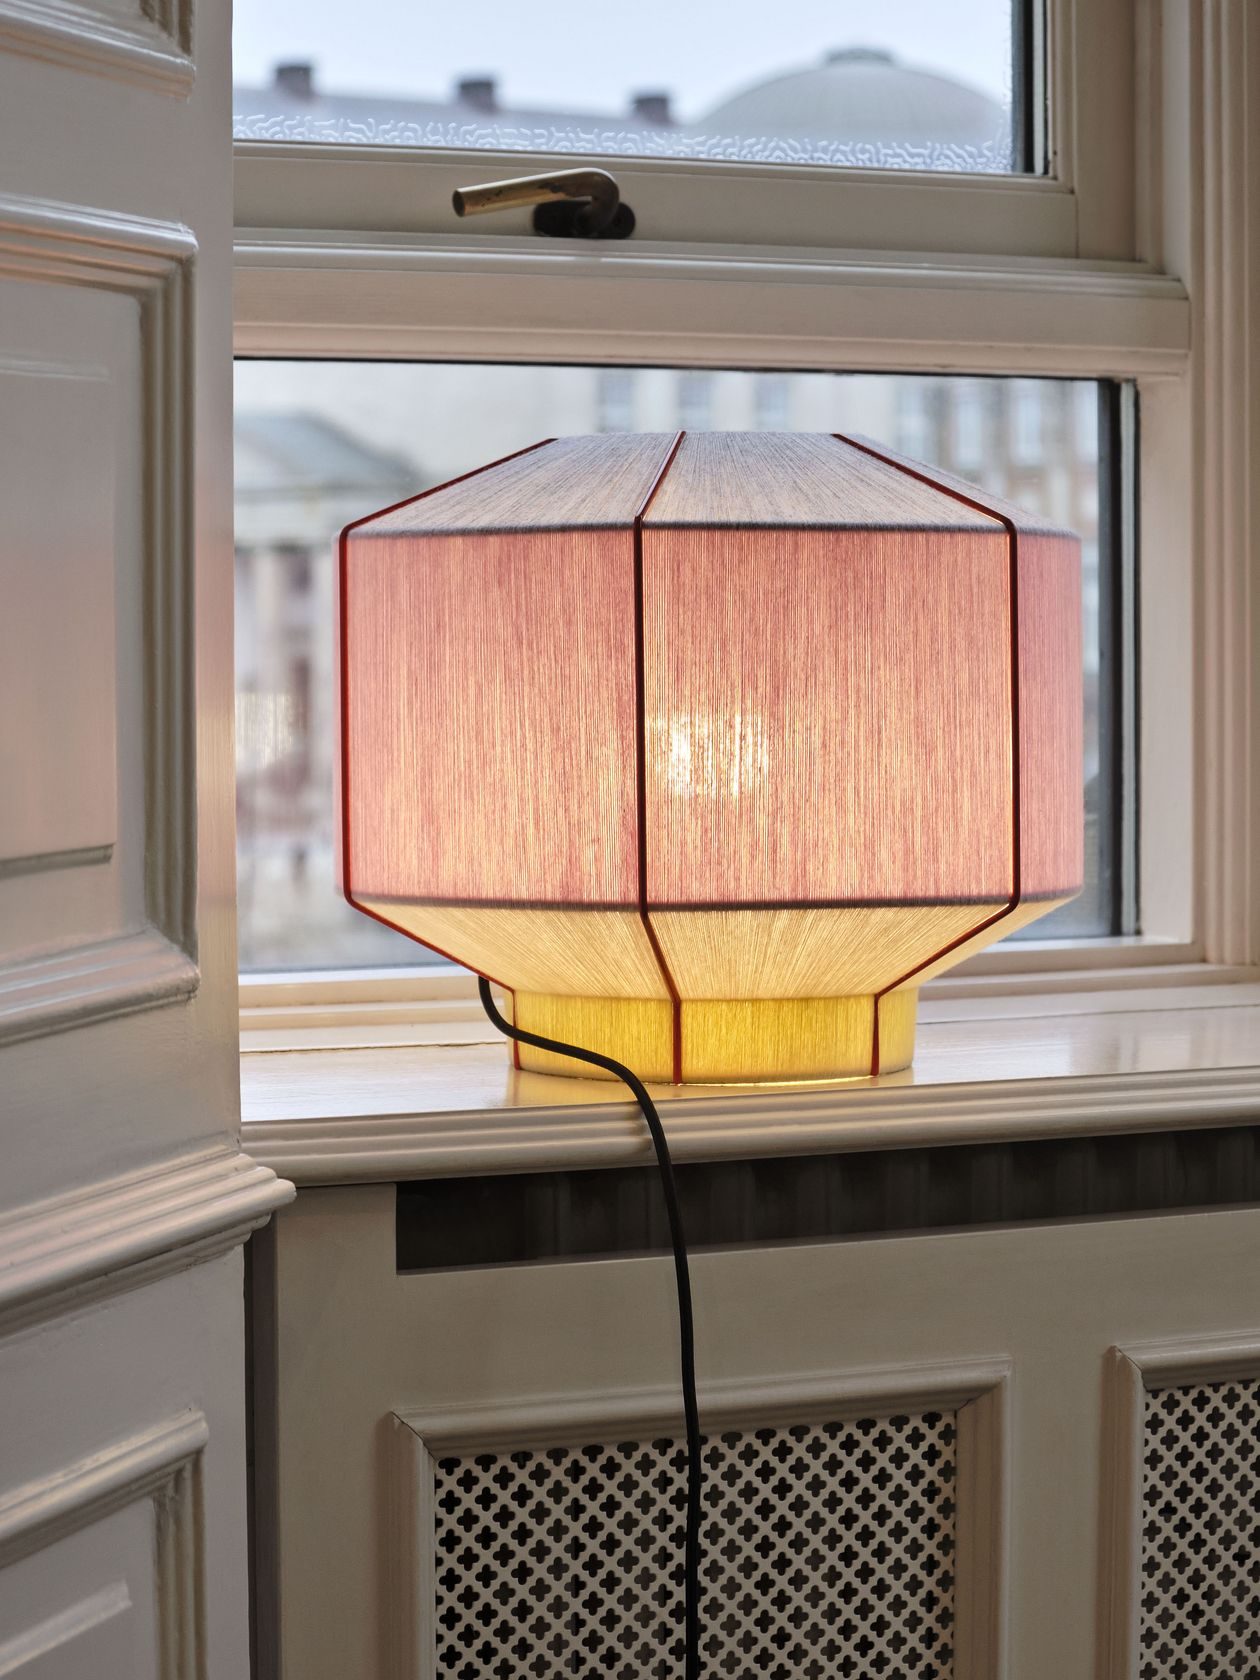 Bonbon lamp by Ana Kras for Hay